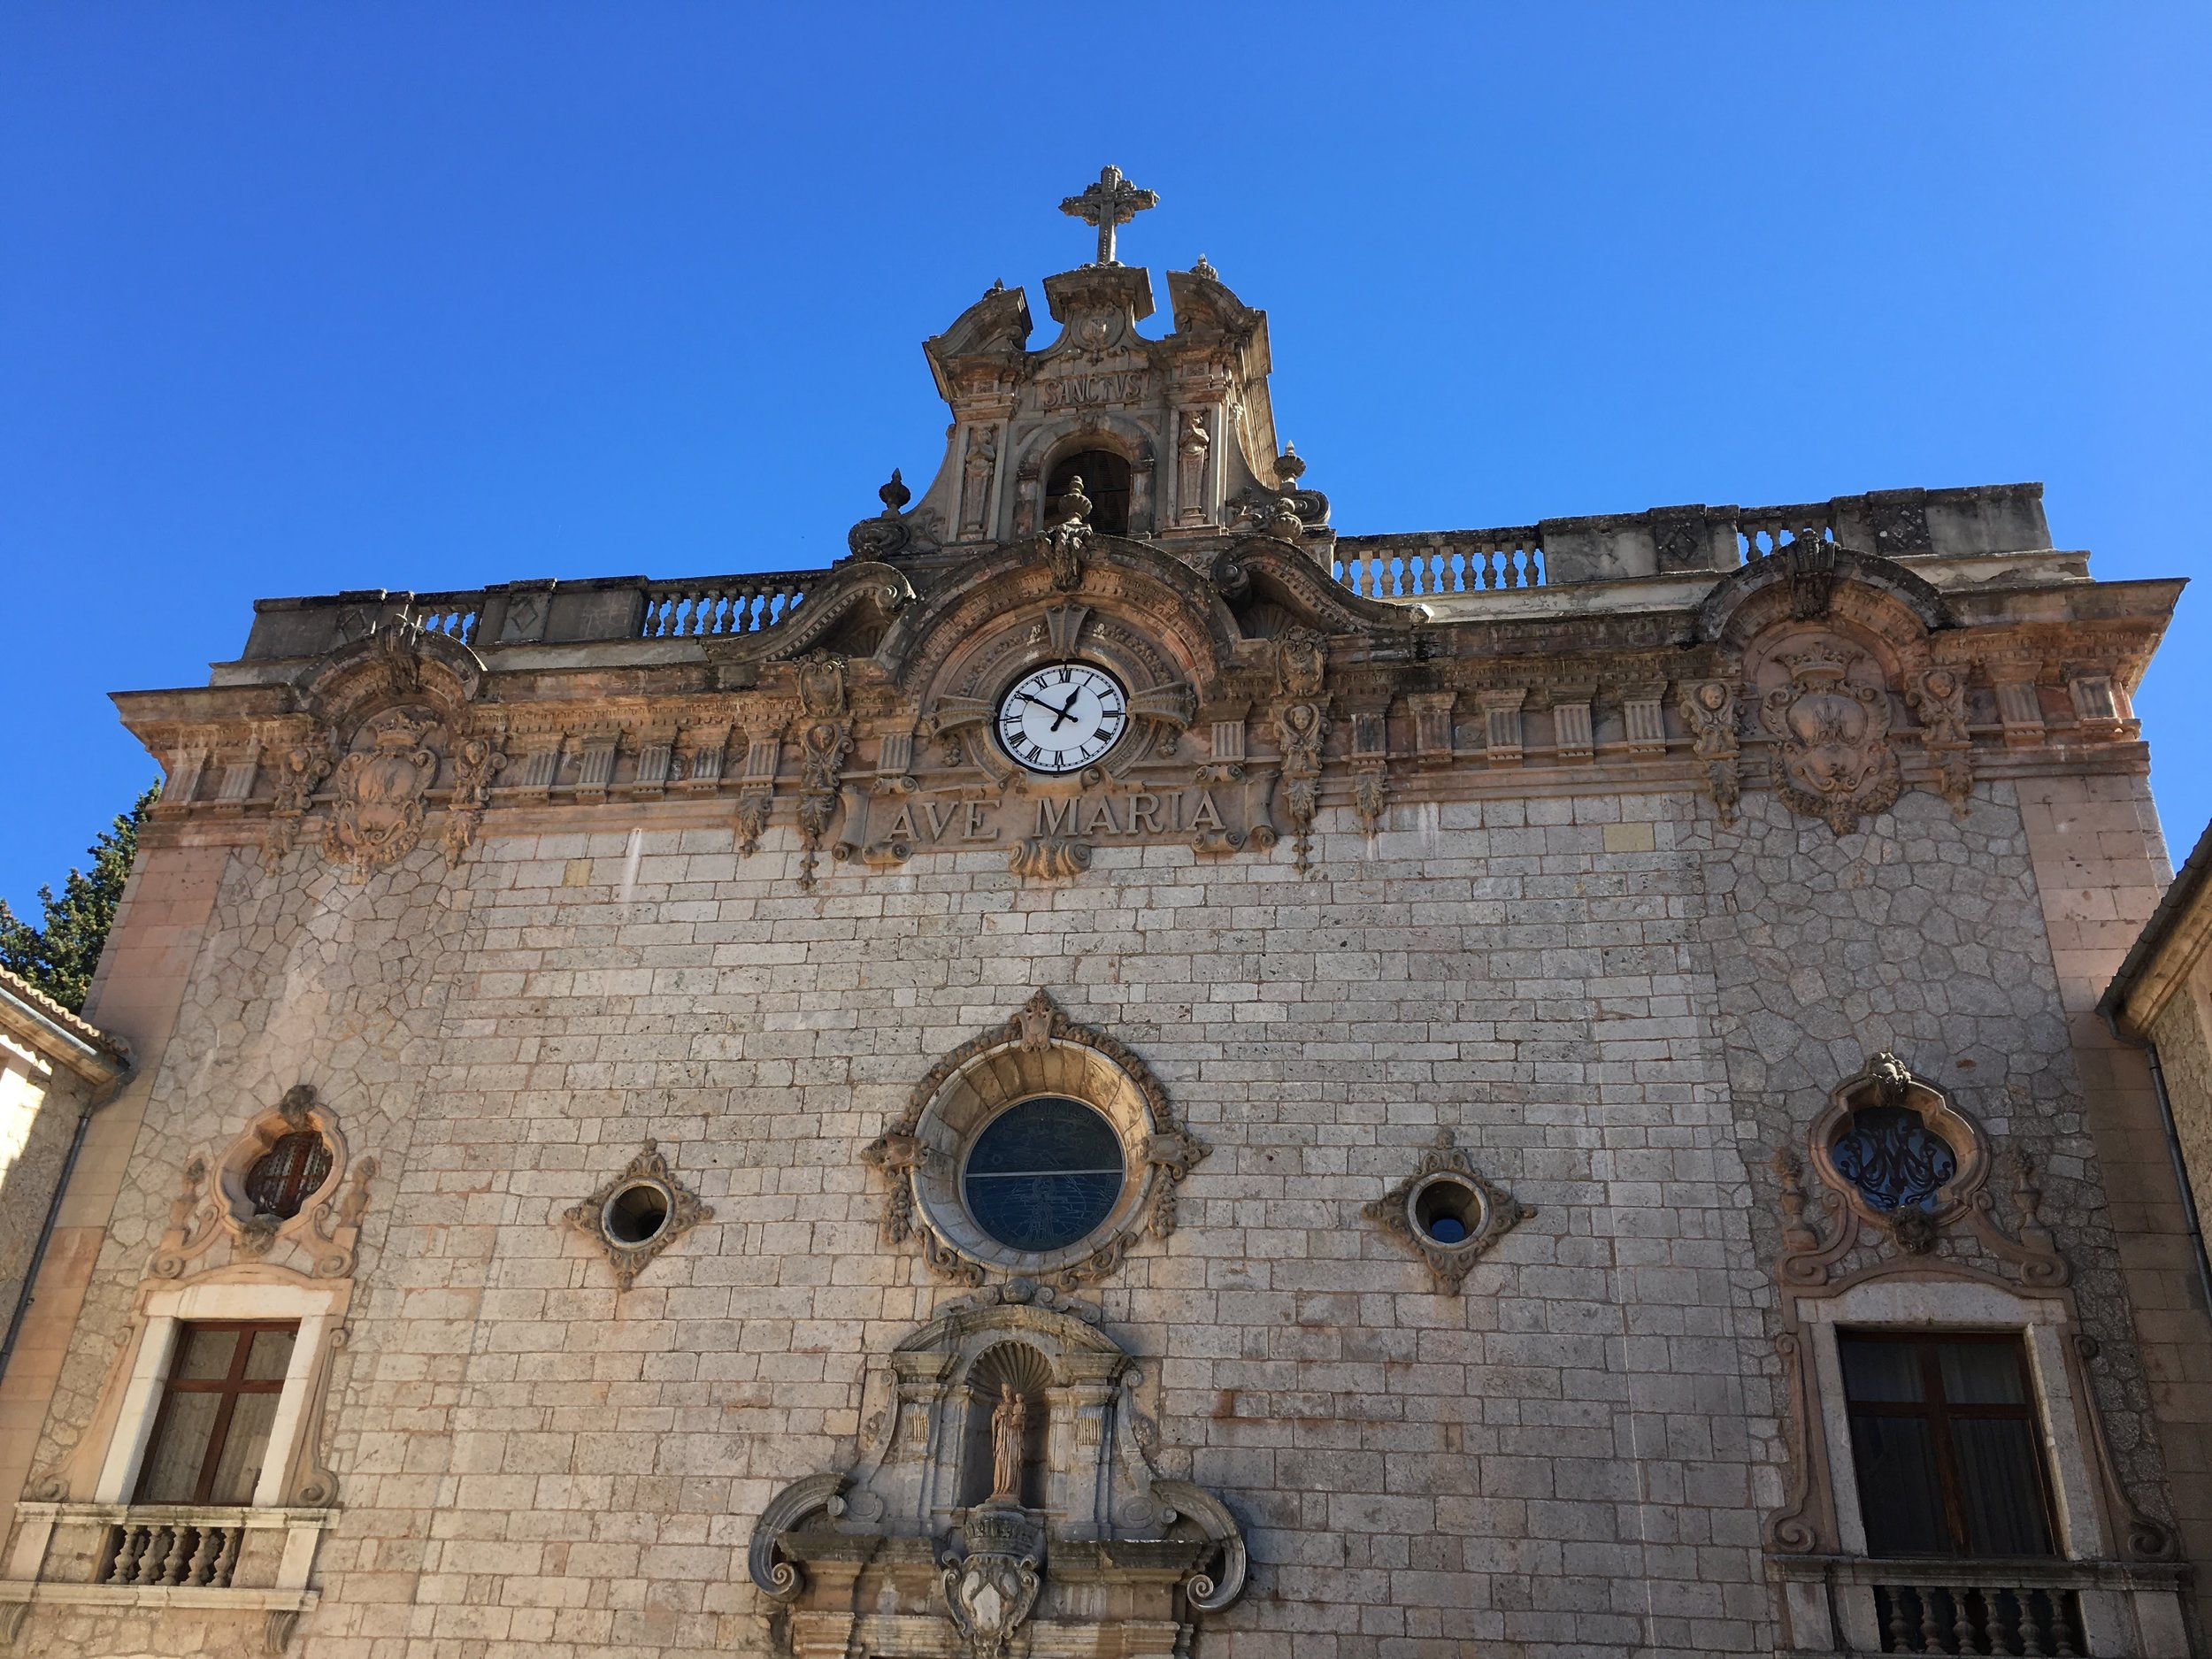 4) Visit the monastery at Lluc - One of the top sights on the island, and if you have time take the scenic drive through the mountains to the Port de Soller for lunch or dinner.